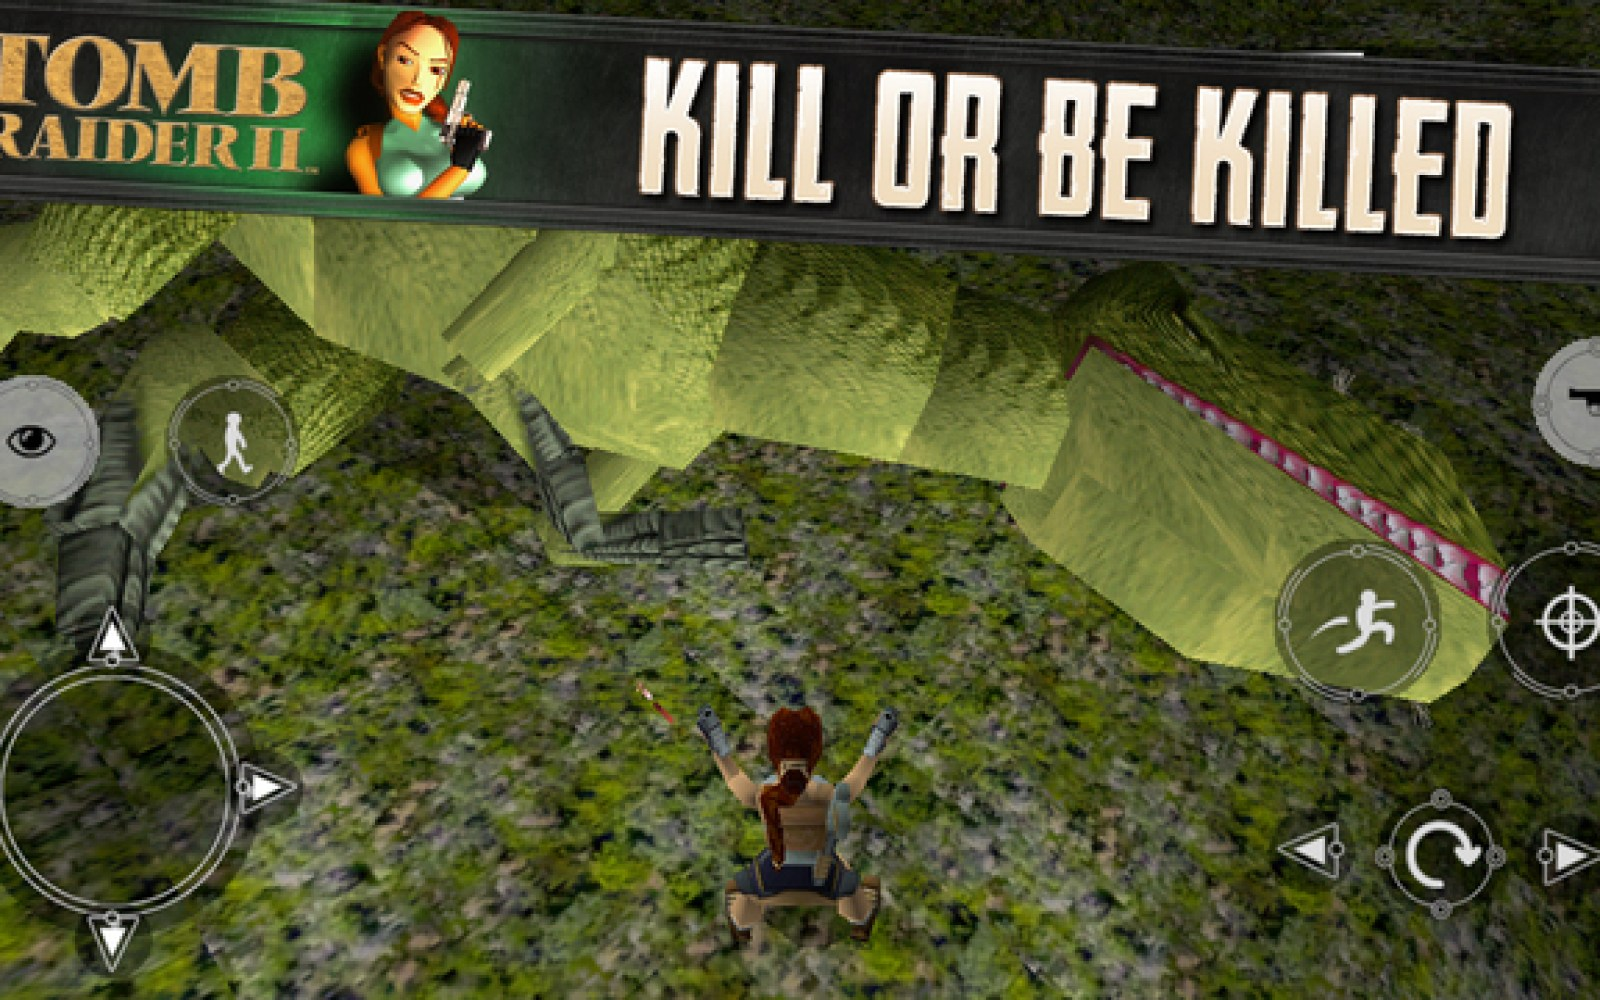 Take another nostalgic trip back to the 90s as Tomb Raider II available on the iPhone